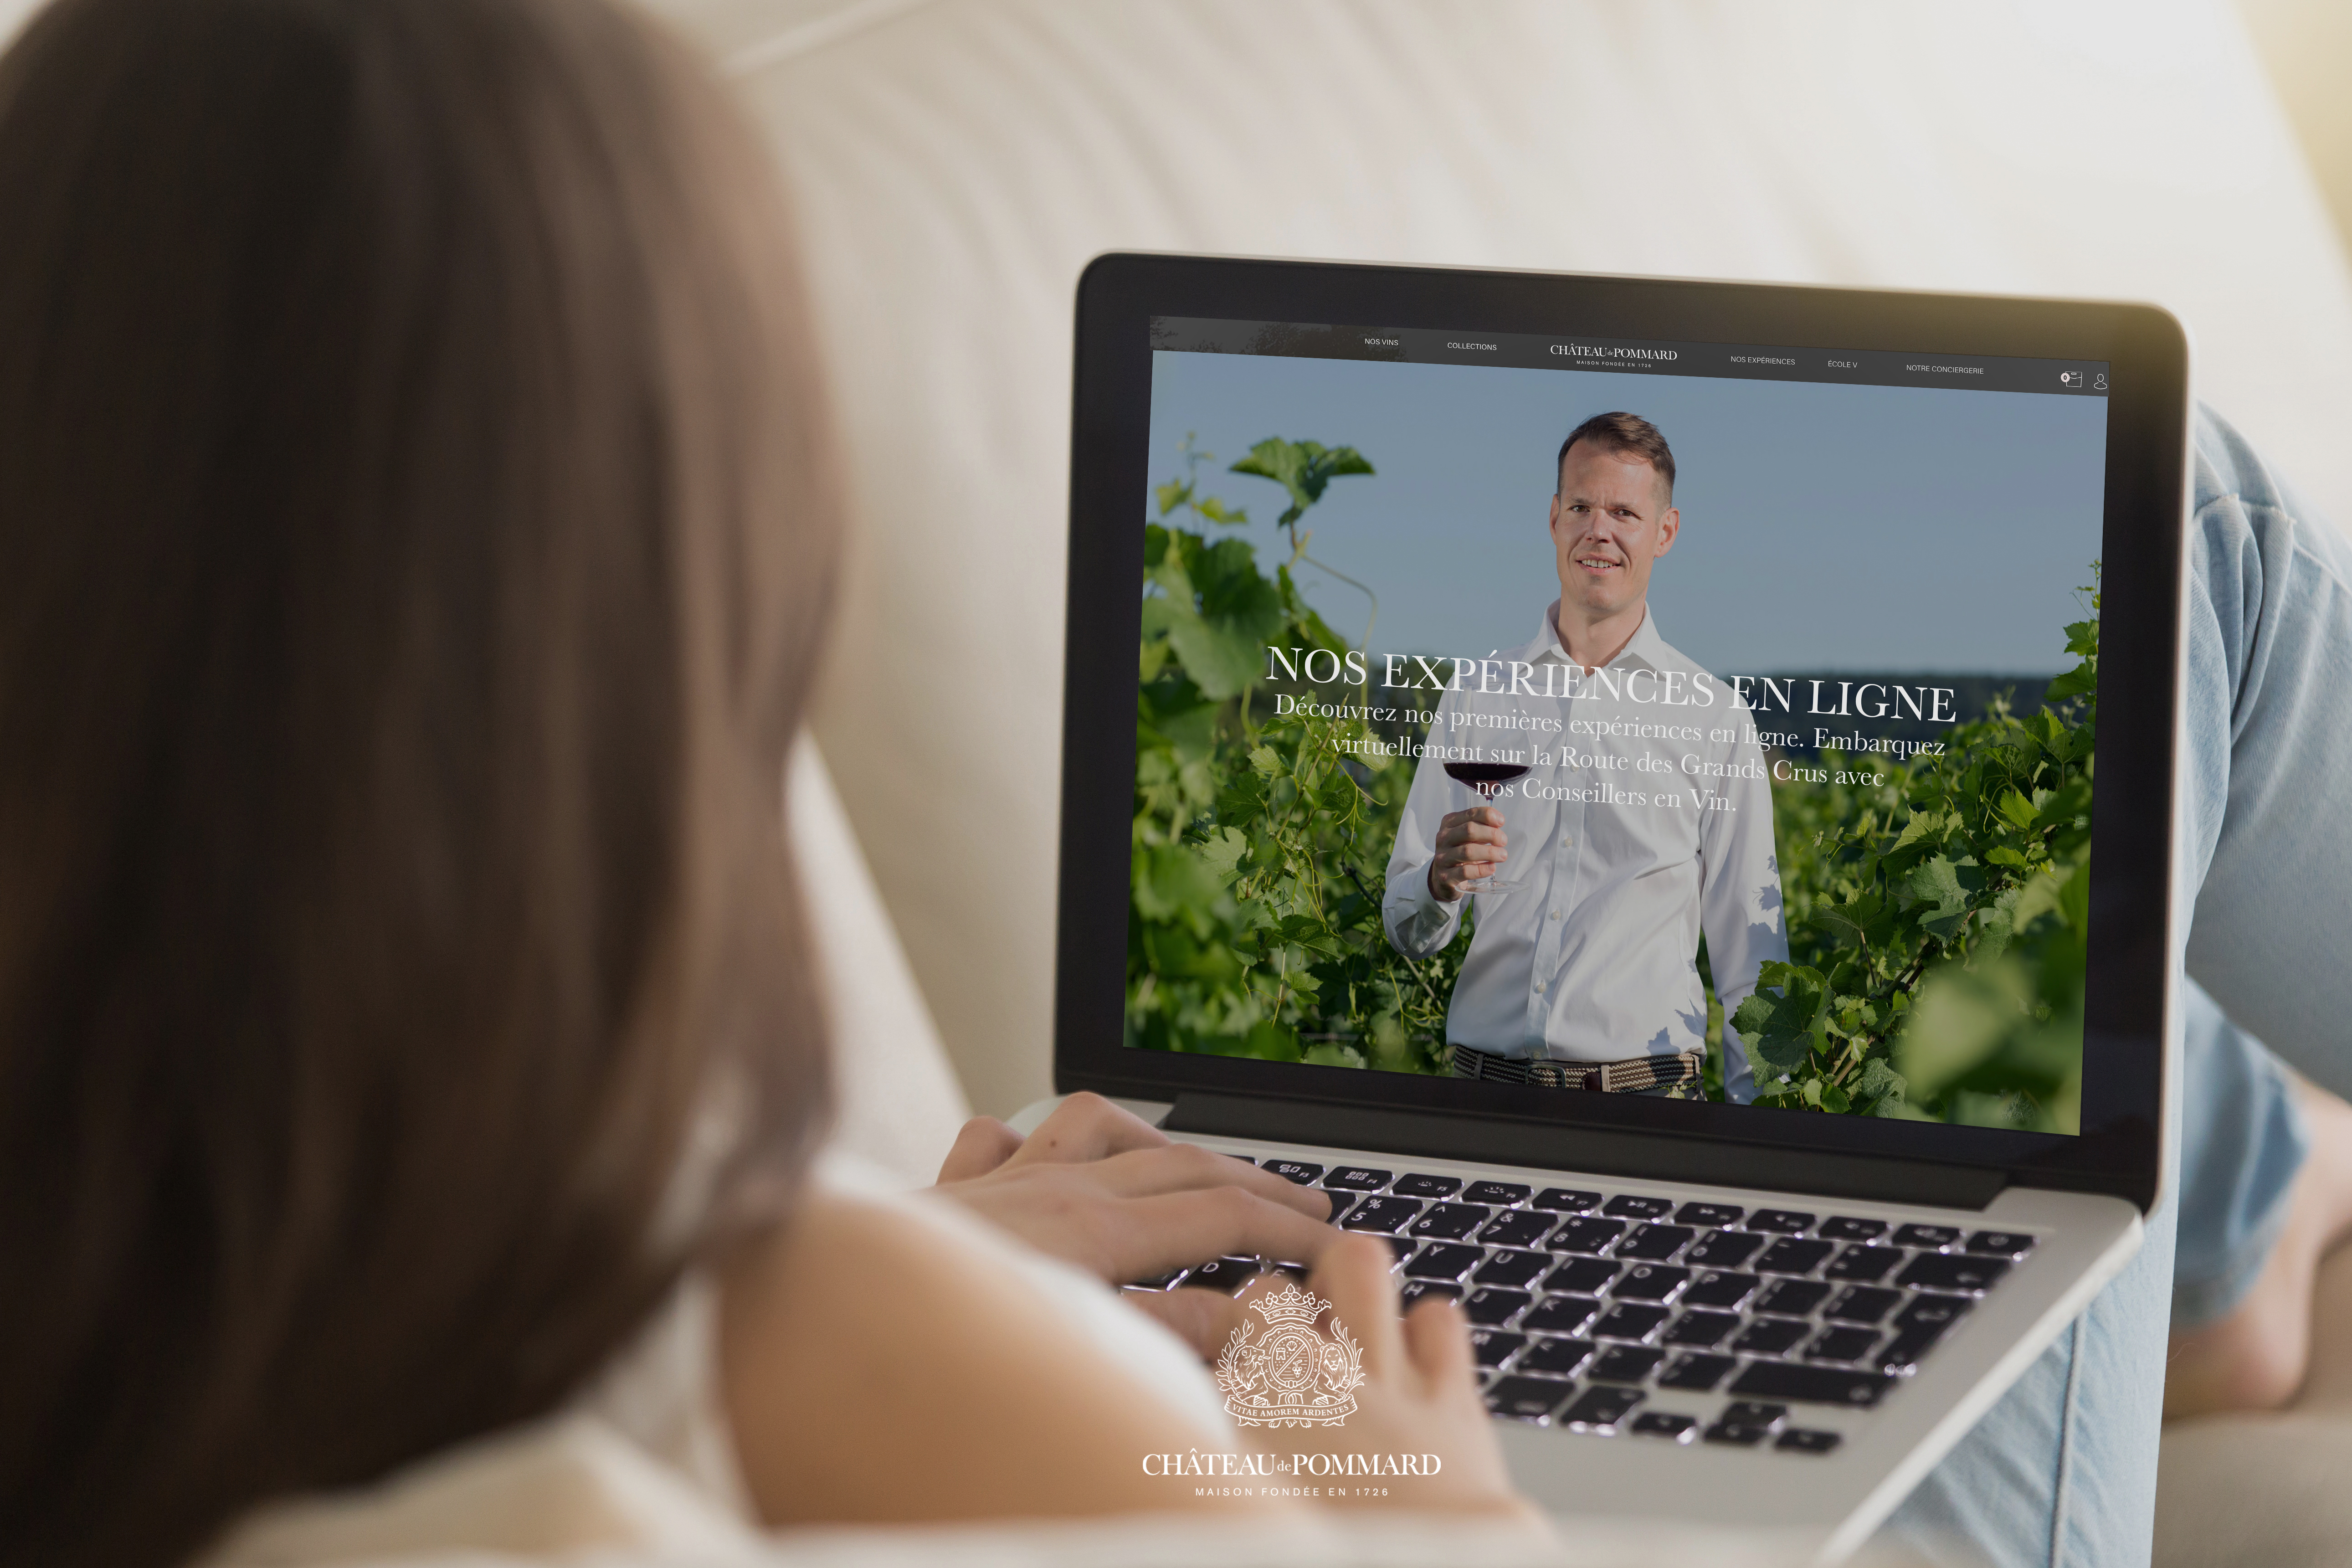 Online Experience with Château de Pommard